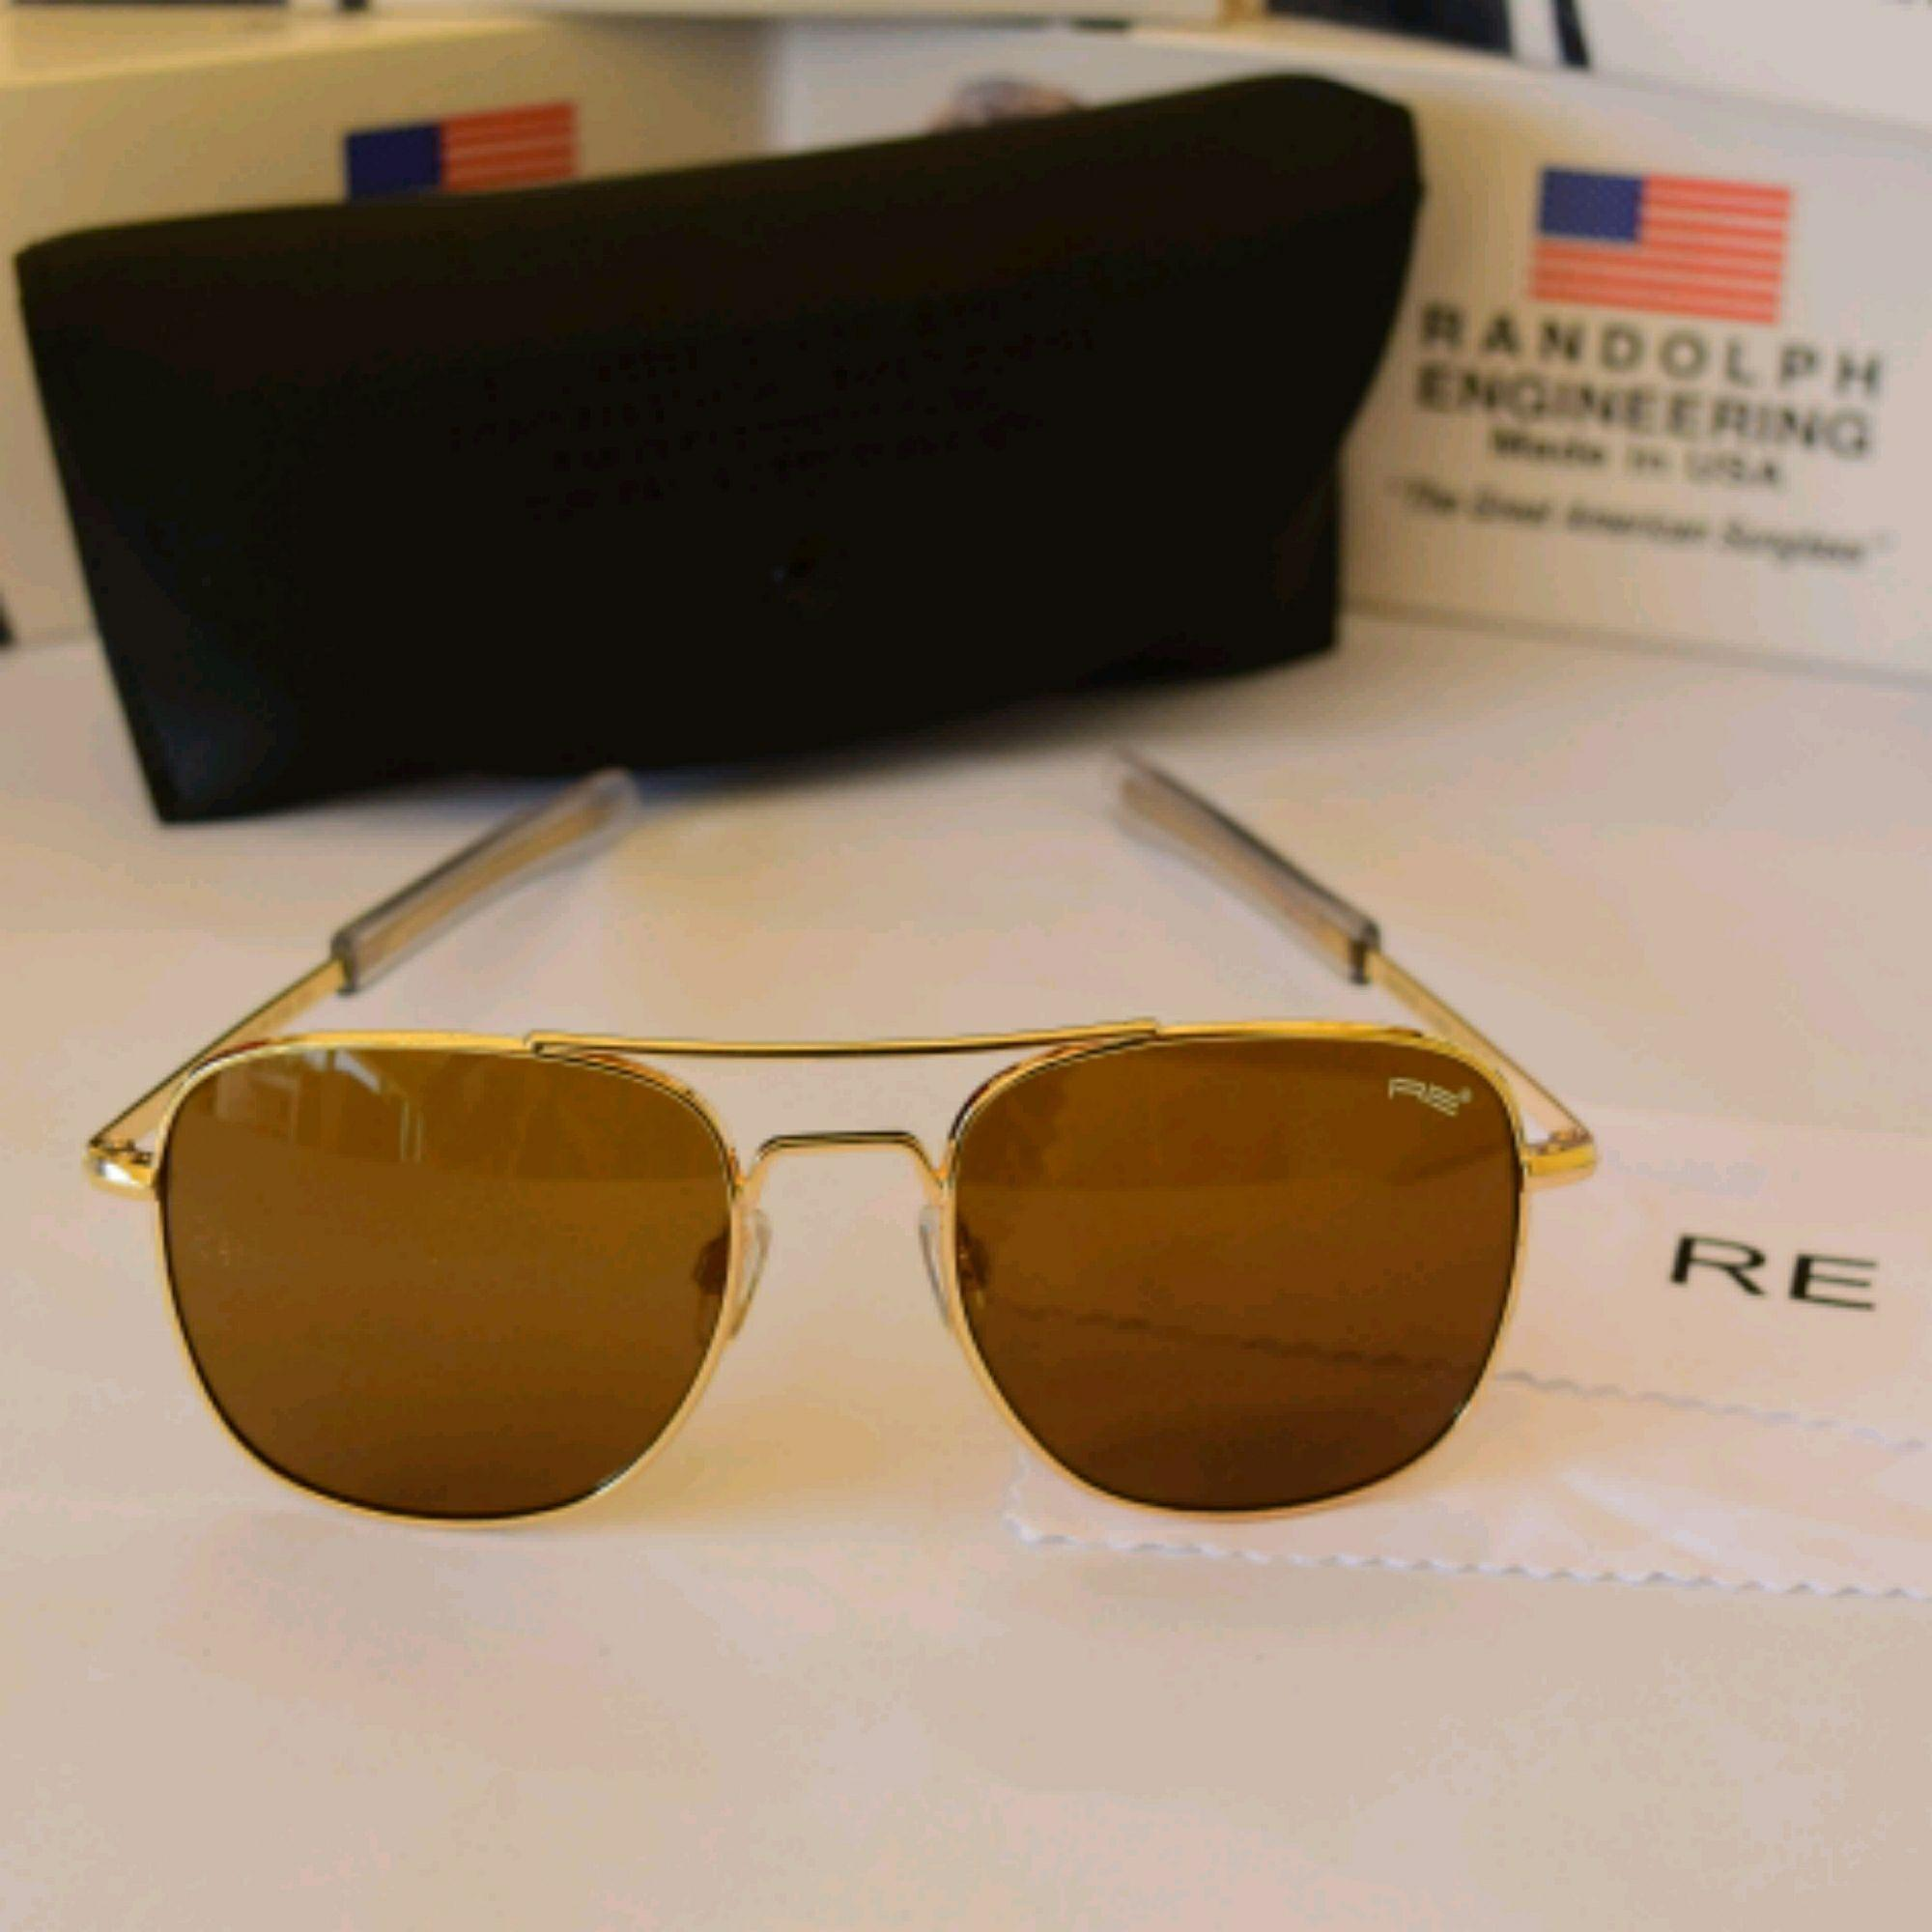 631cdd91d99 Buy Randolph Engineering mens sunglasses at Best Prices Online in ...